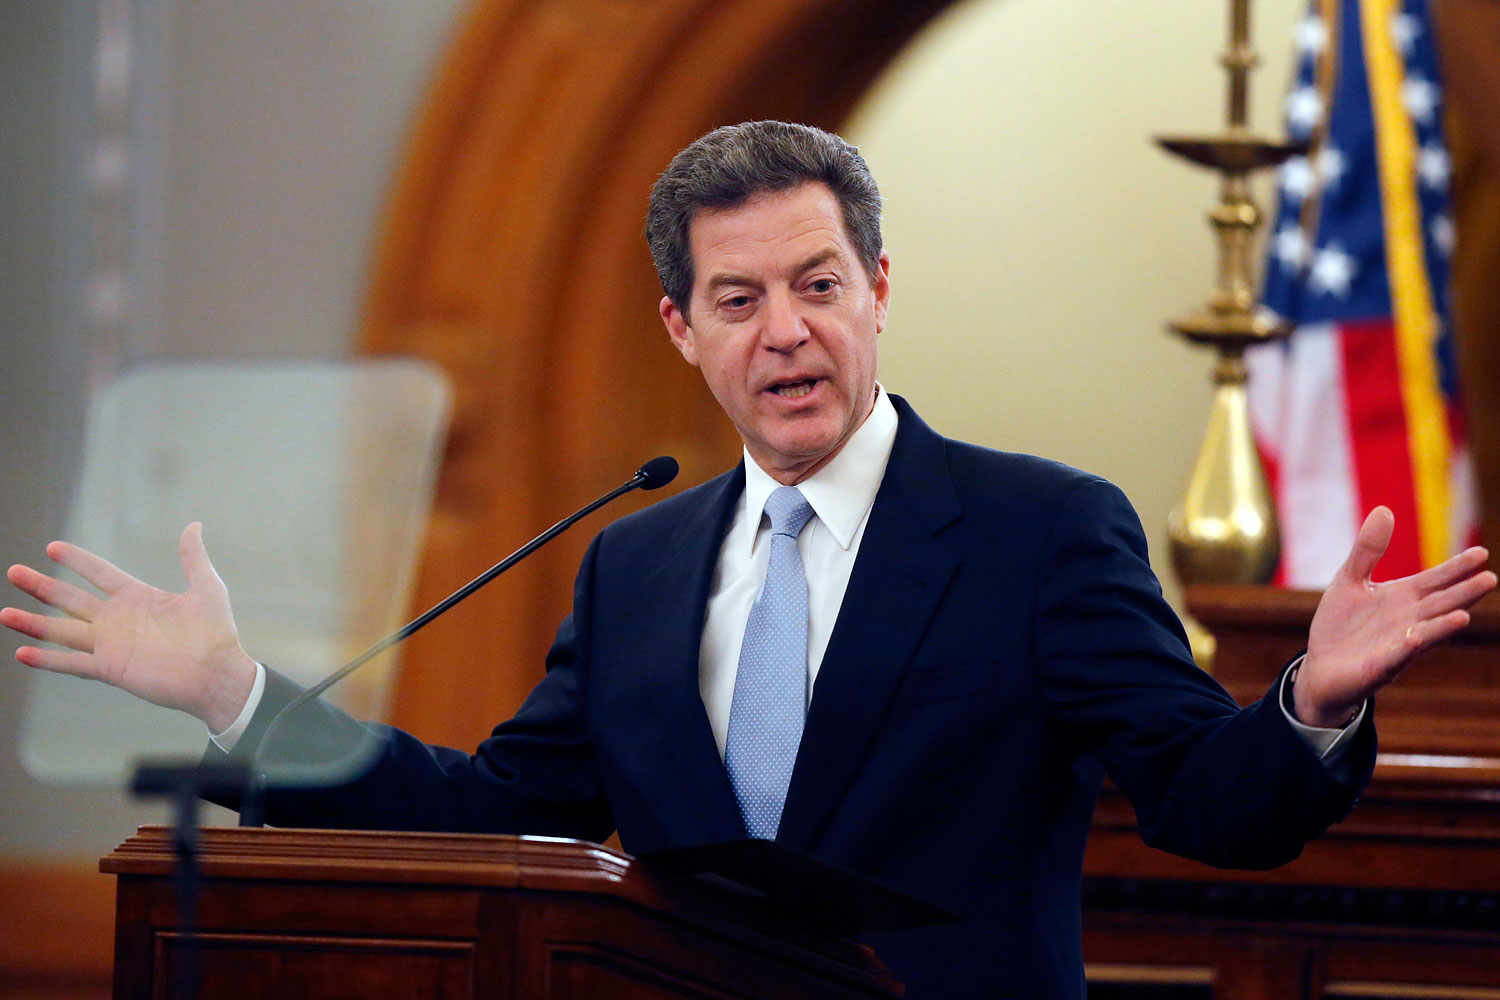 Kansas Gov. Sam Brownback delivers his State of the State speech to an annual joint session of the state House and Senate at the Statehouse in Topeka, Kan., Jan. 15, 2014.